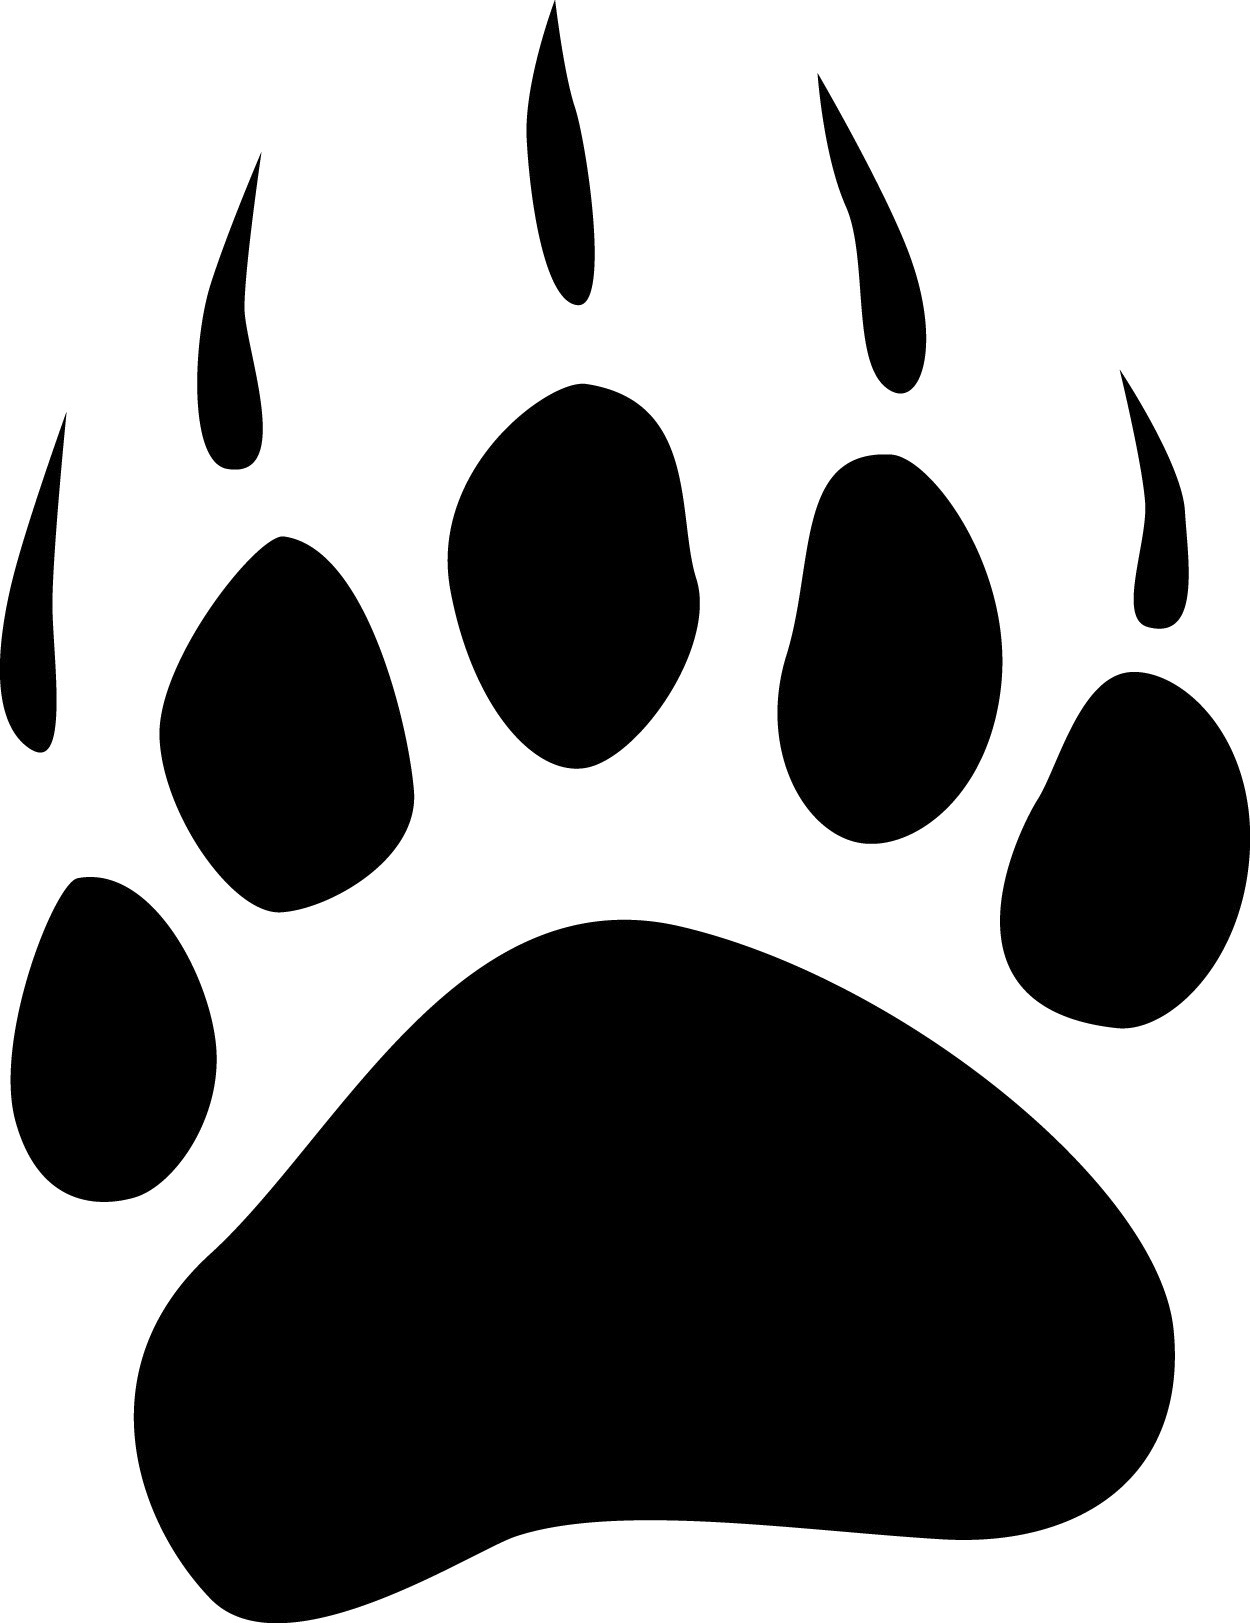 Grizzly bear paw print clipart free images 2